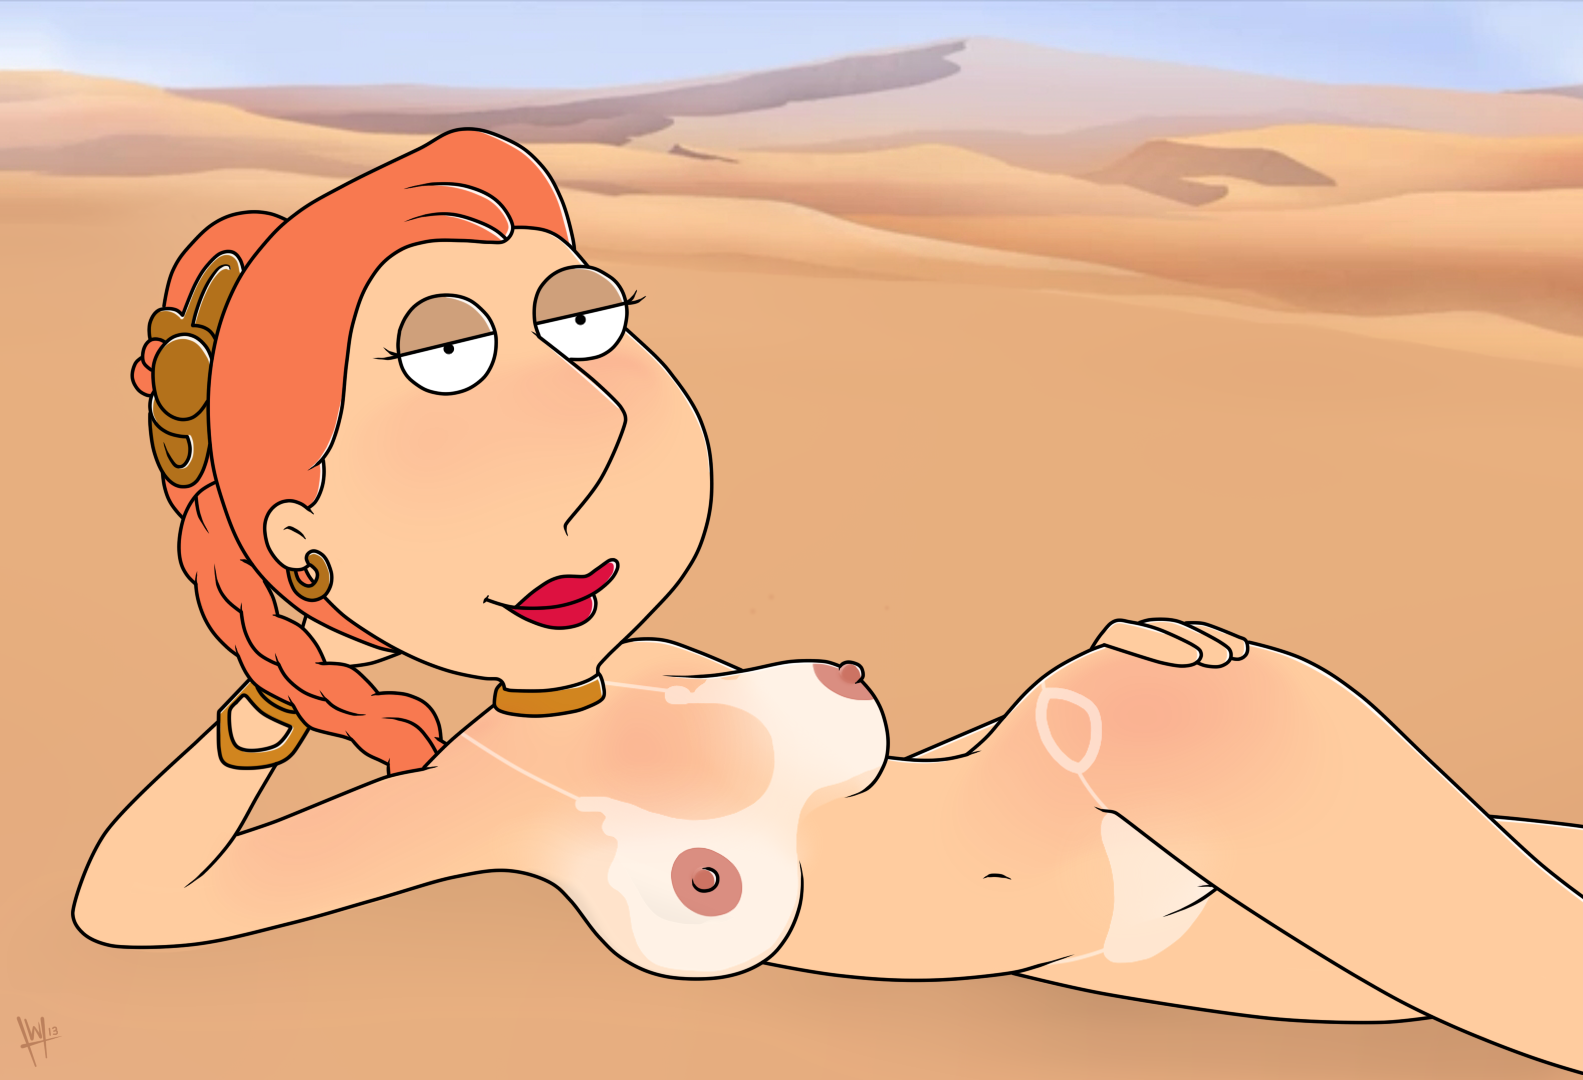 Suggest you Free lois griffin sex videos likely